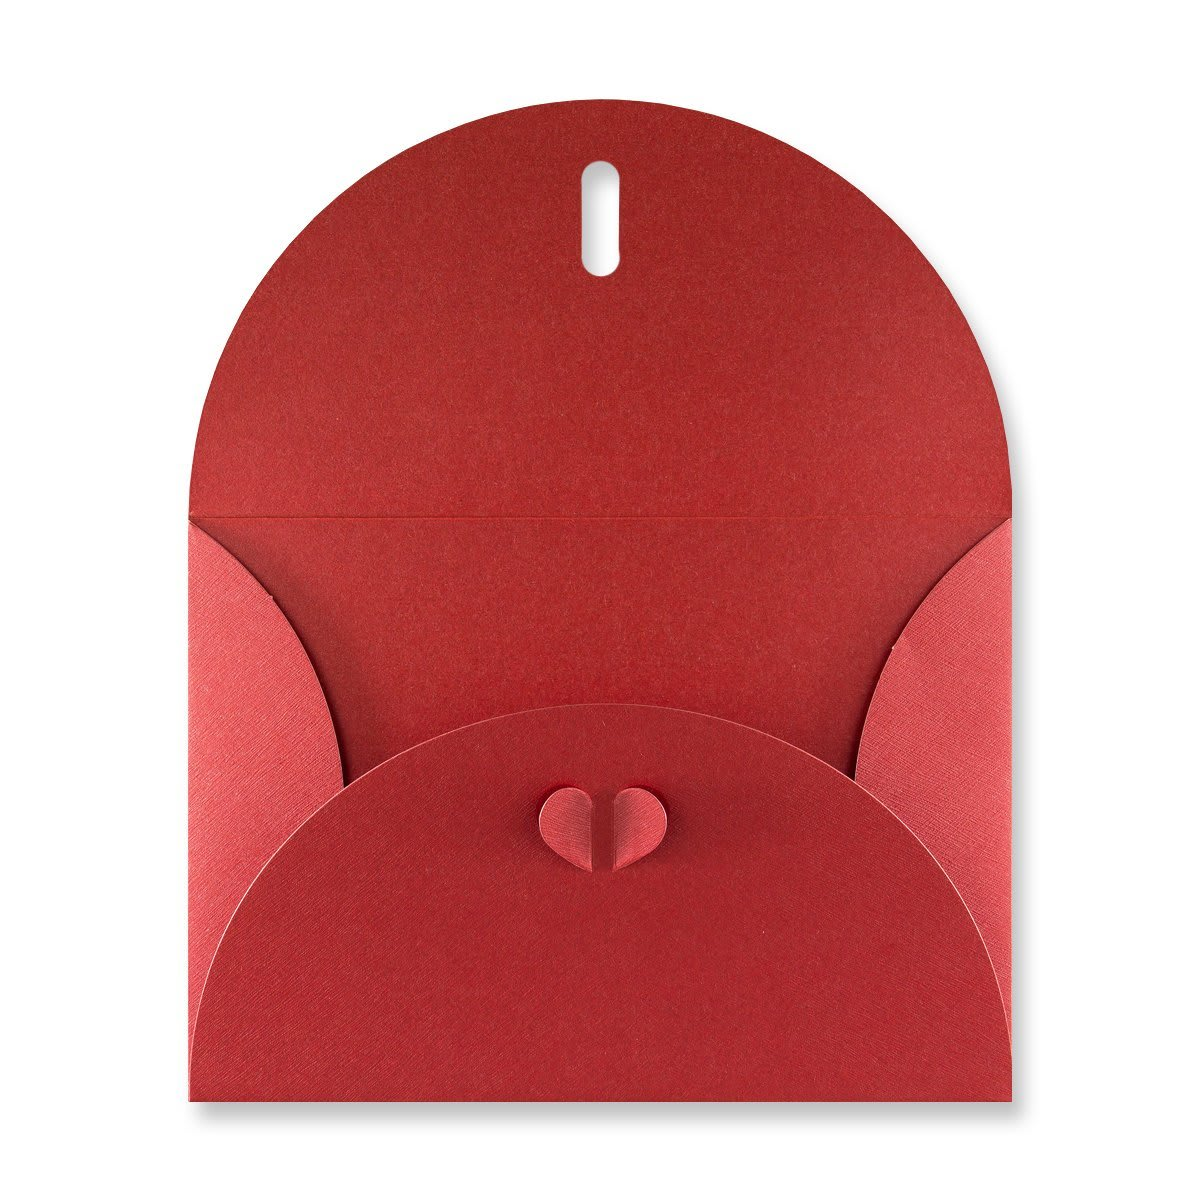 C5 CARDINAL RED BUTTERFLY ENVELOPES